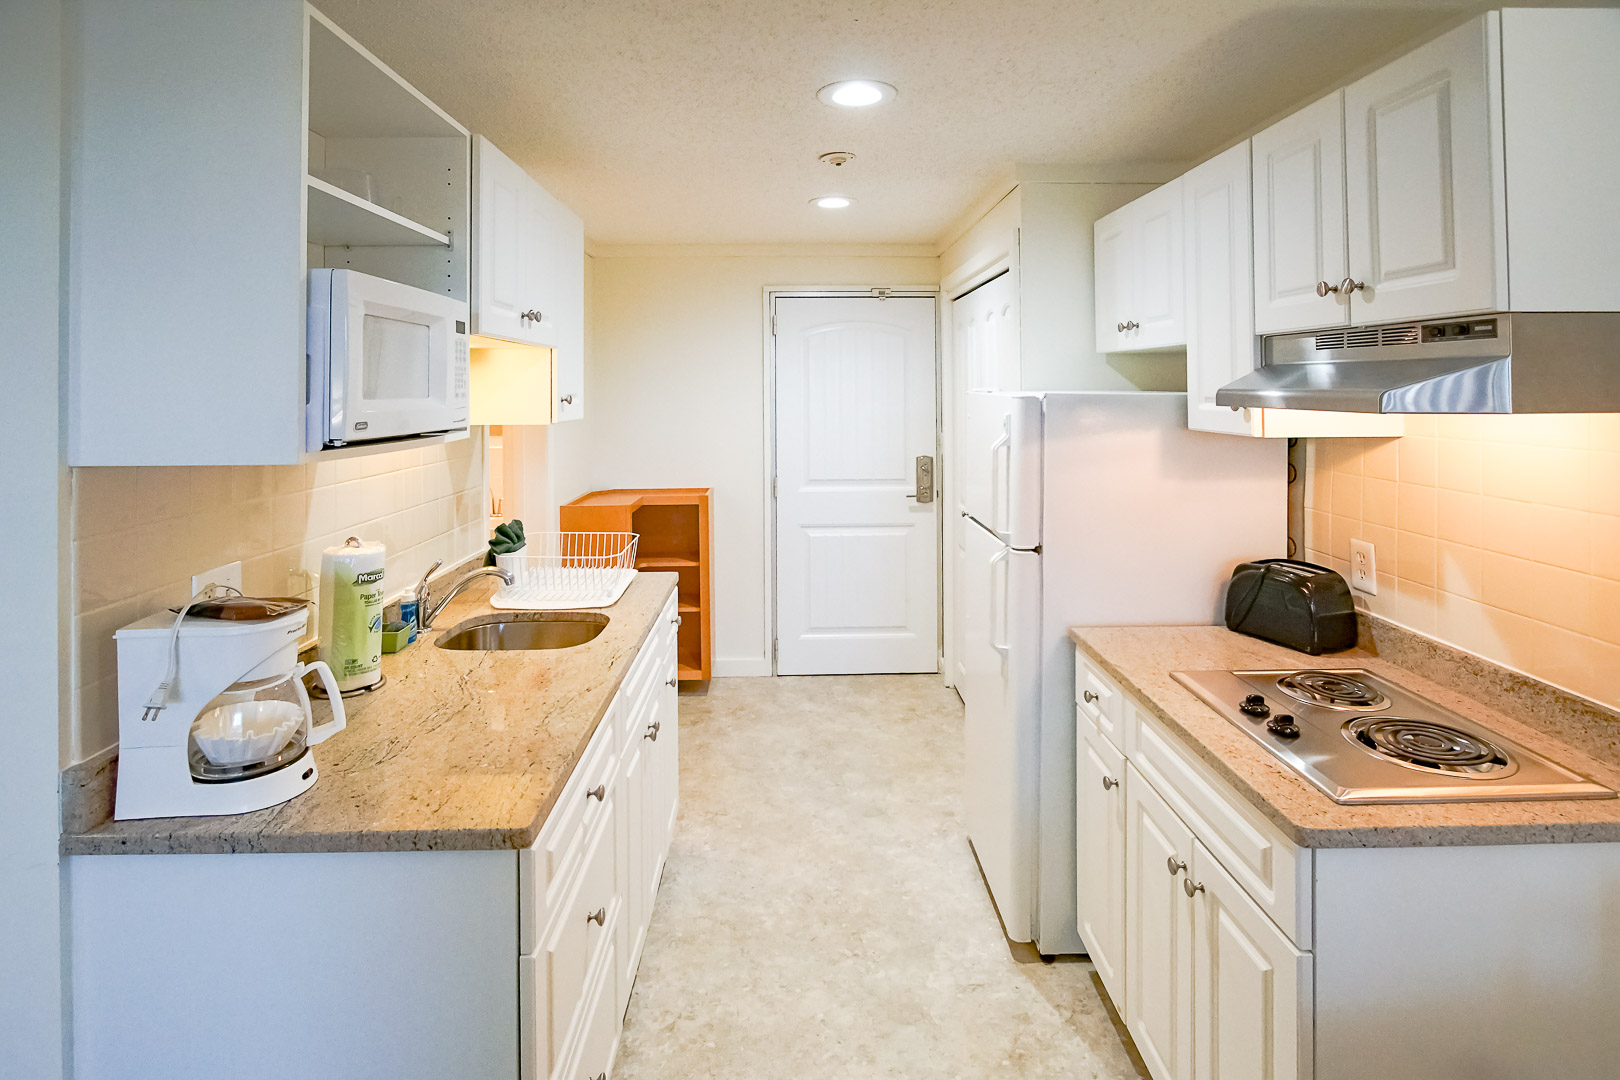 A renovated kitchen area at VRI's Courtyard Resort in Massachusetts.